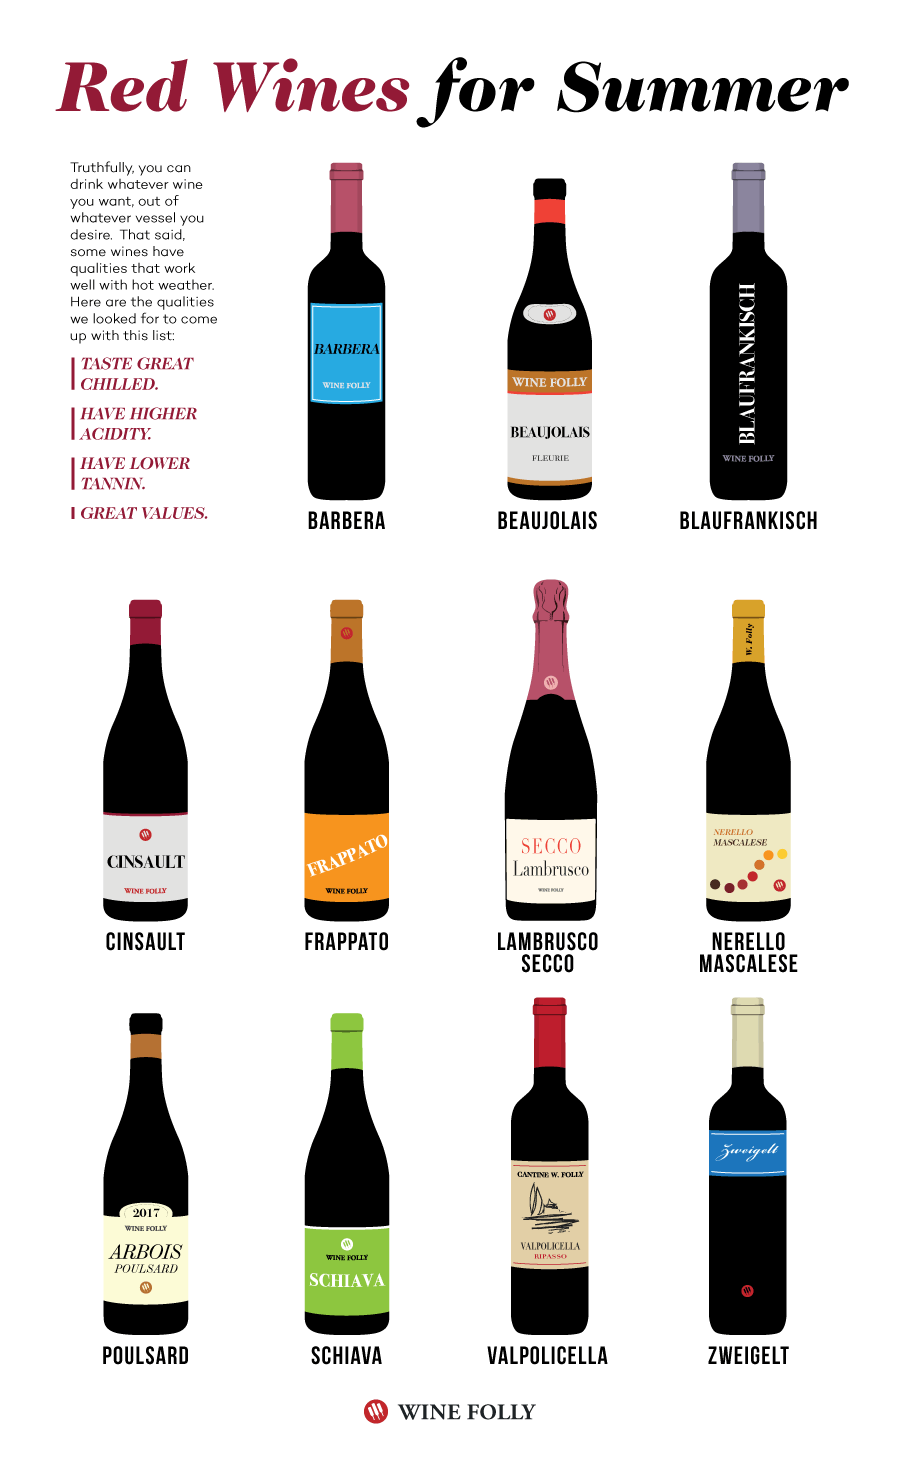 11 Red Wines to Enjoy During Summer by Wine Folly